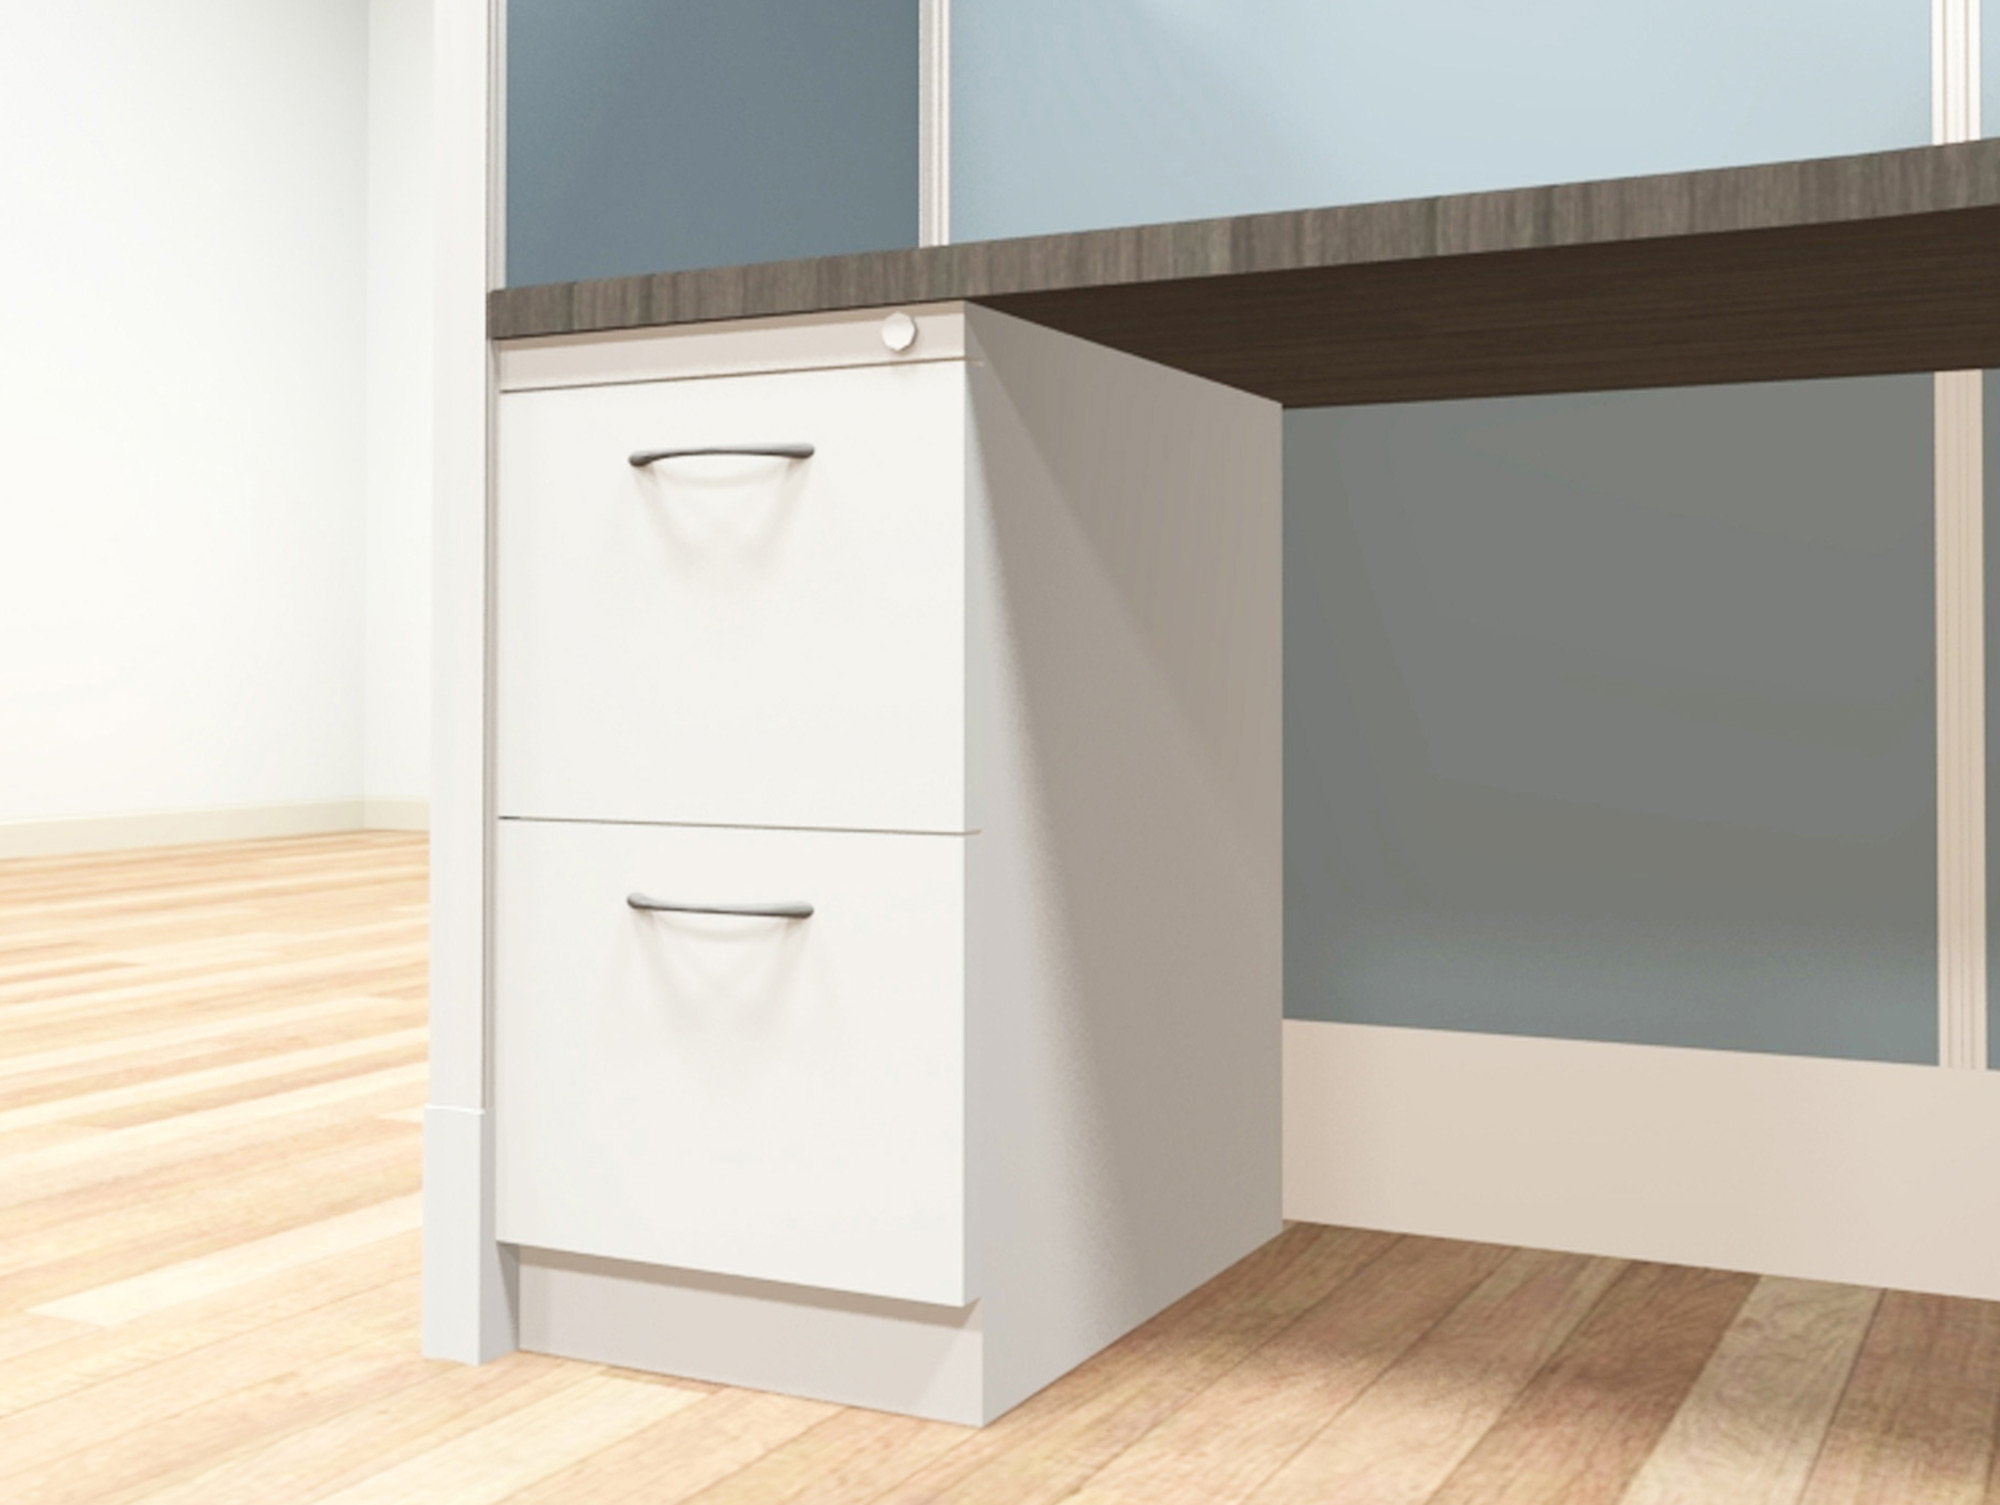 6x8 modular workstations from AIS - a �file-file� pedestal is an under-surface storage cabinet with two deep drawers designed for hanging files. Lock and key secures all drawers from unwanted visitors.